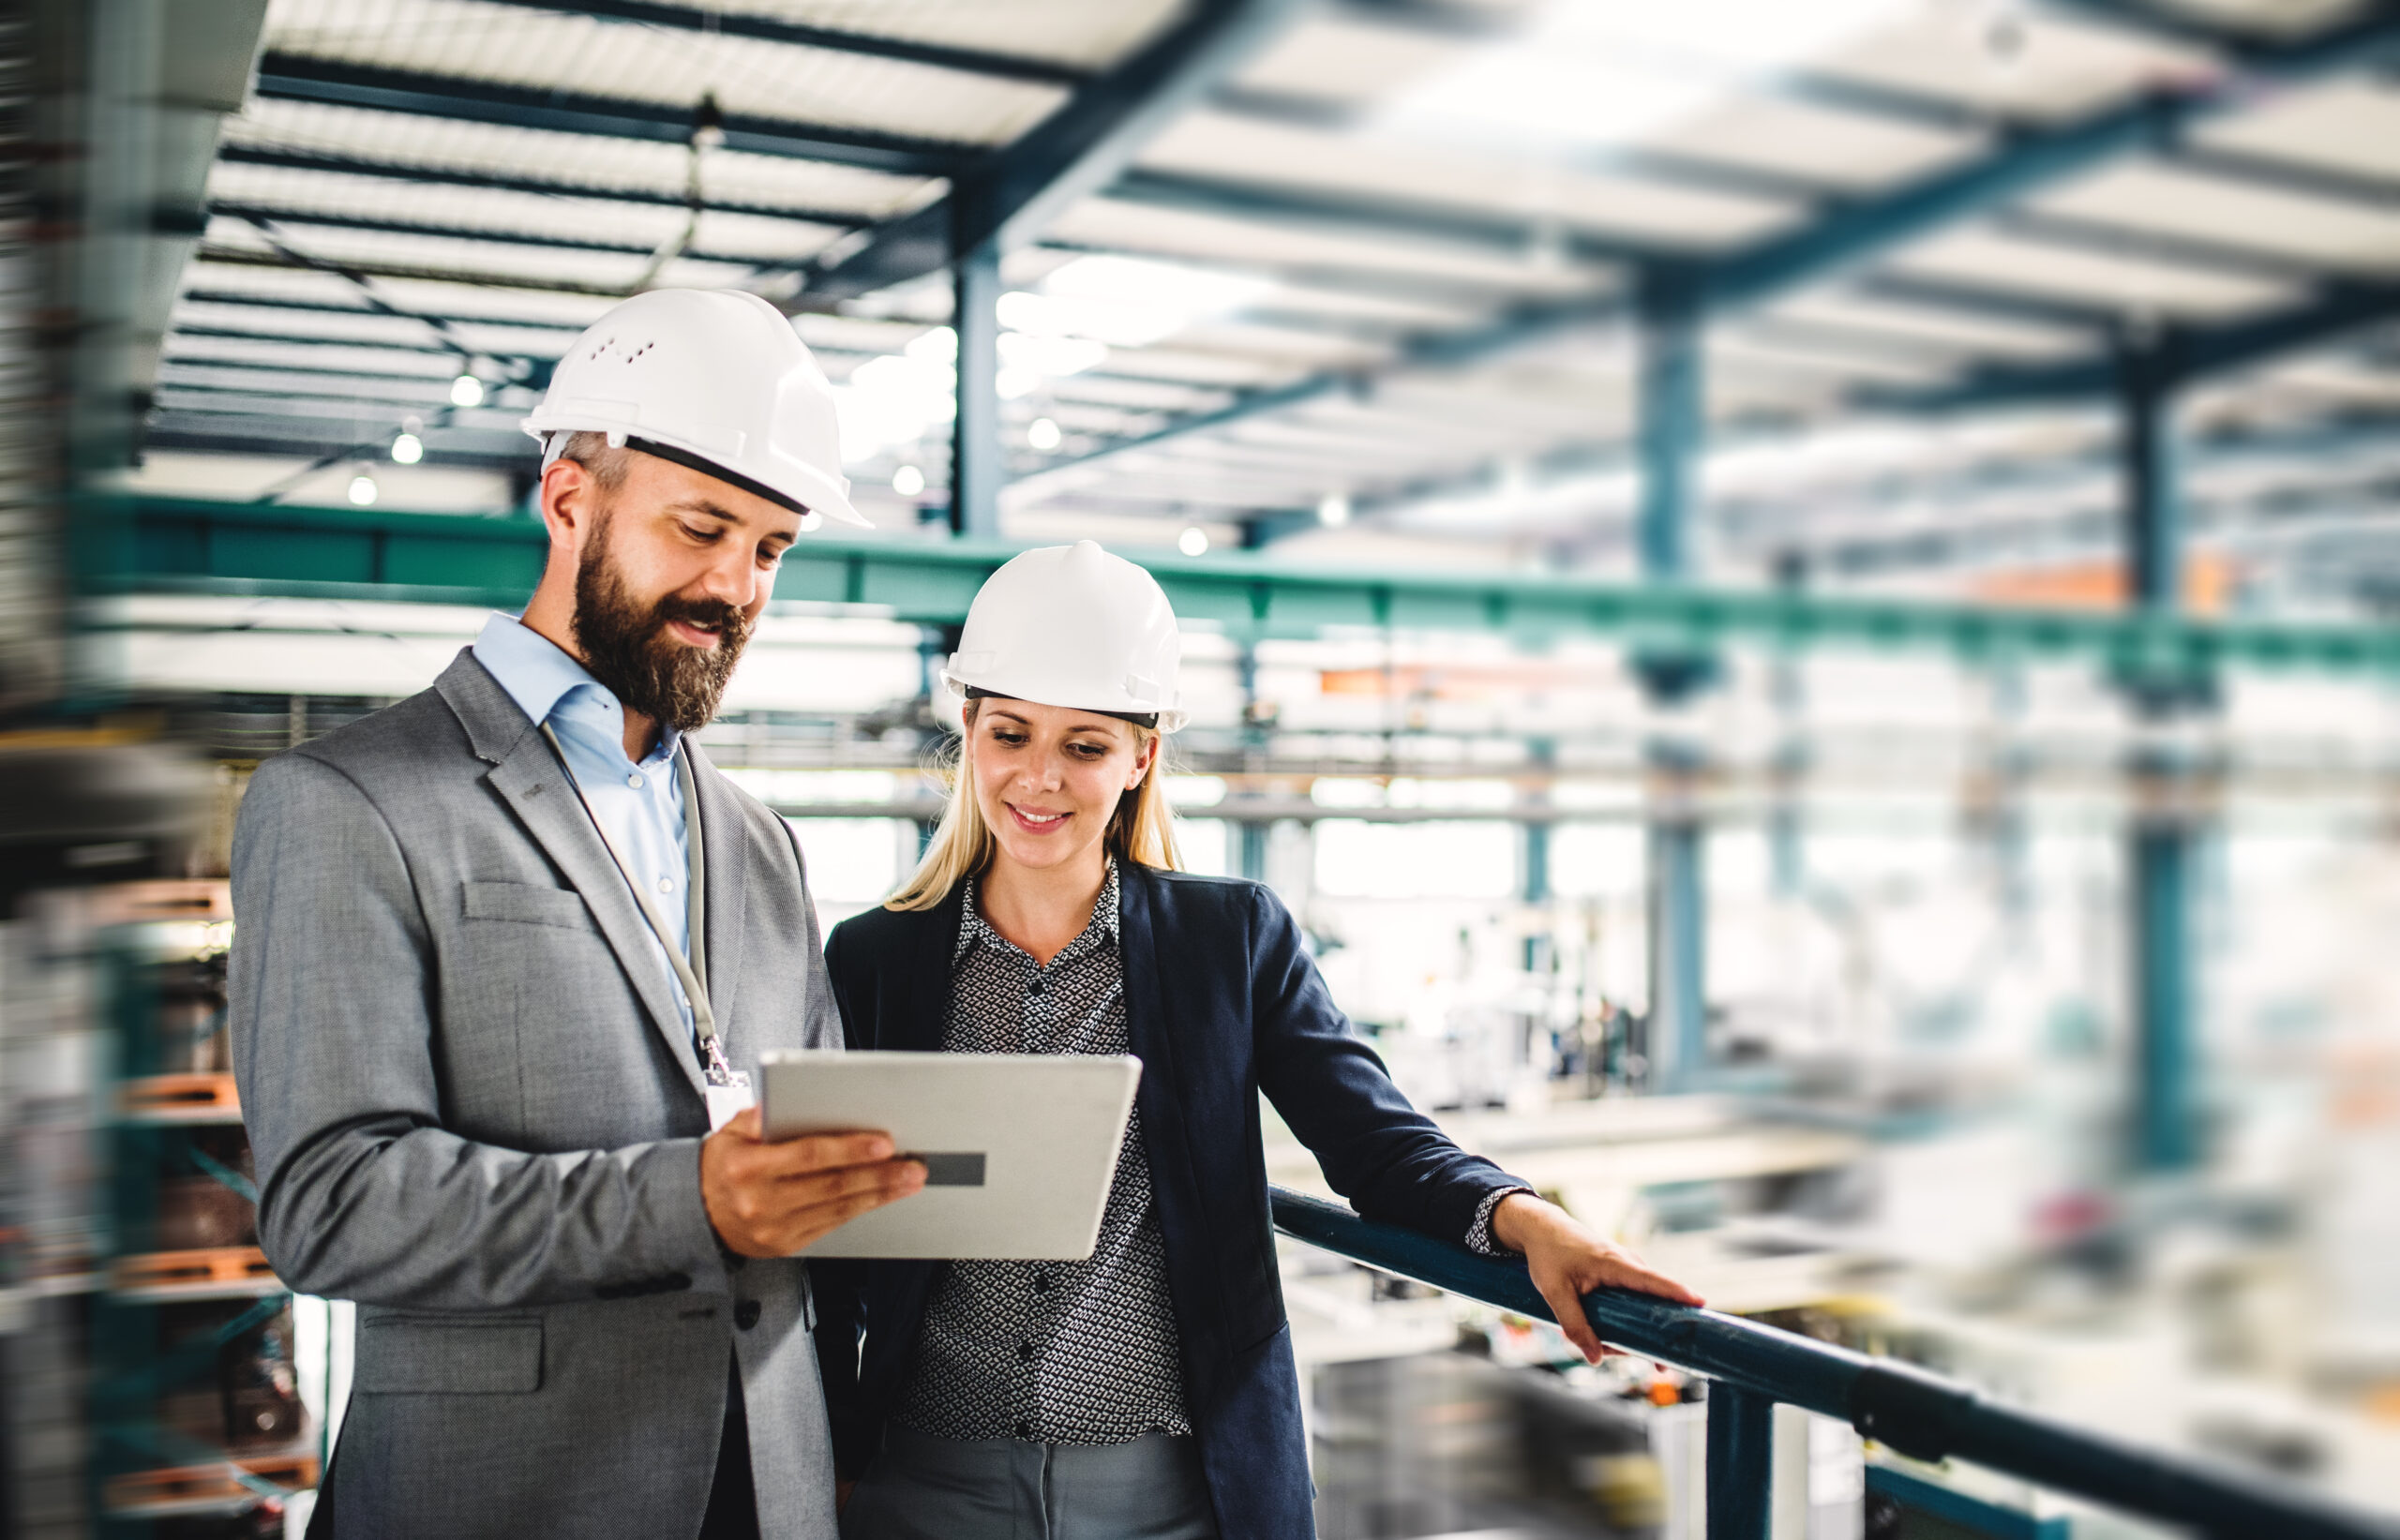 A portrait of a mature industrial man and woman engineer with tablet in a factory, working.